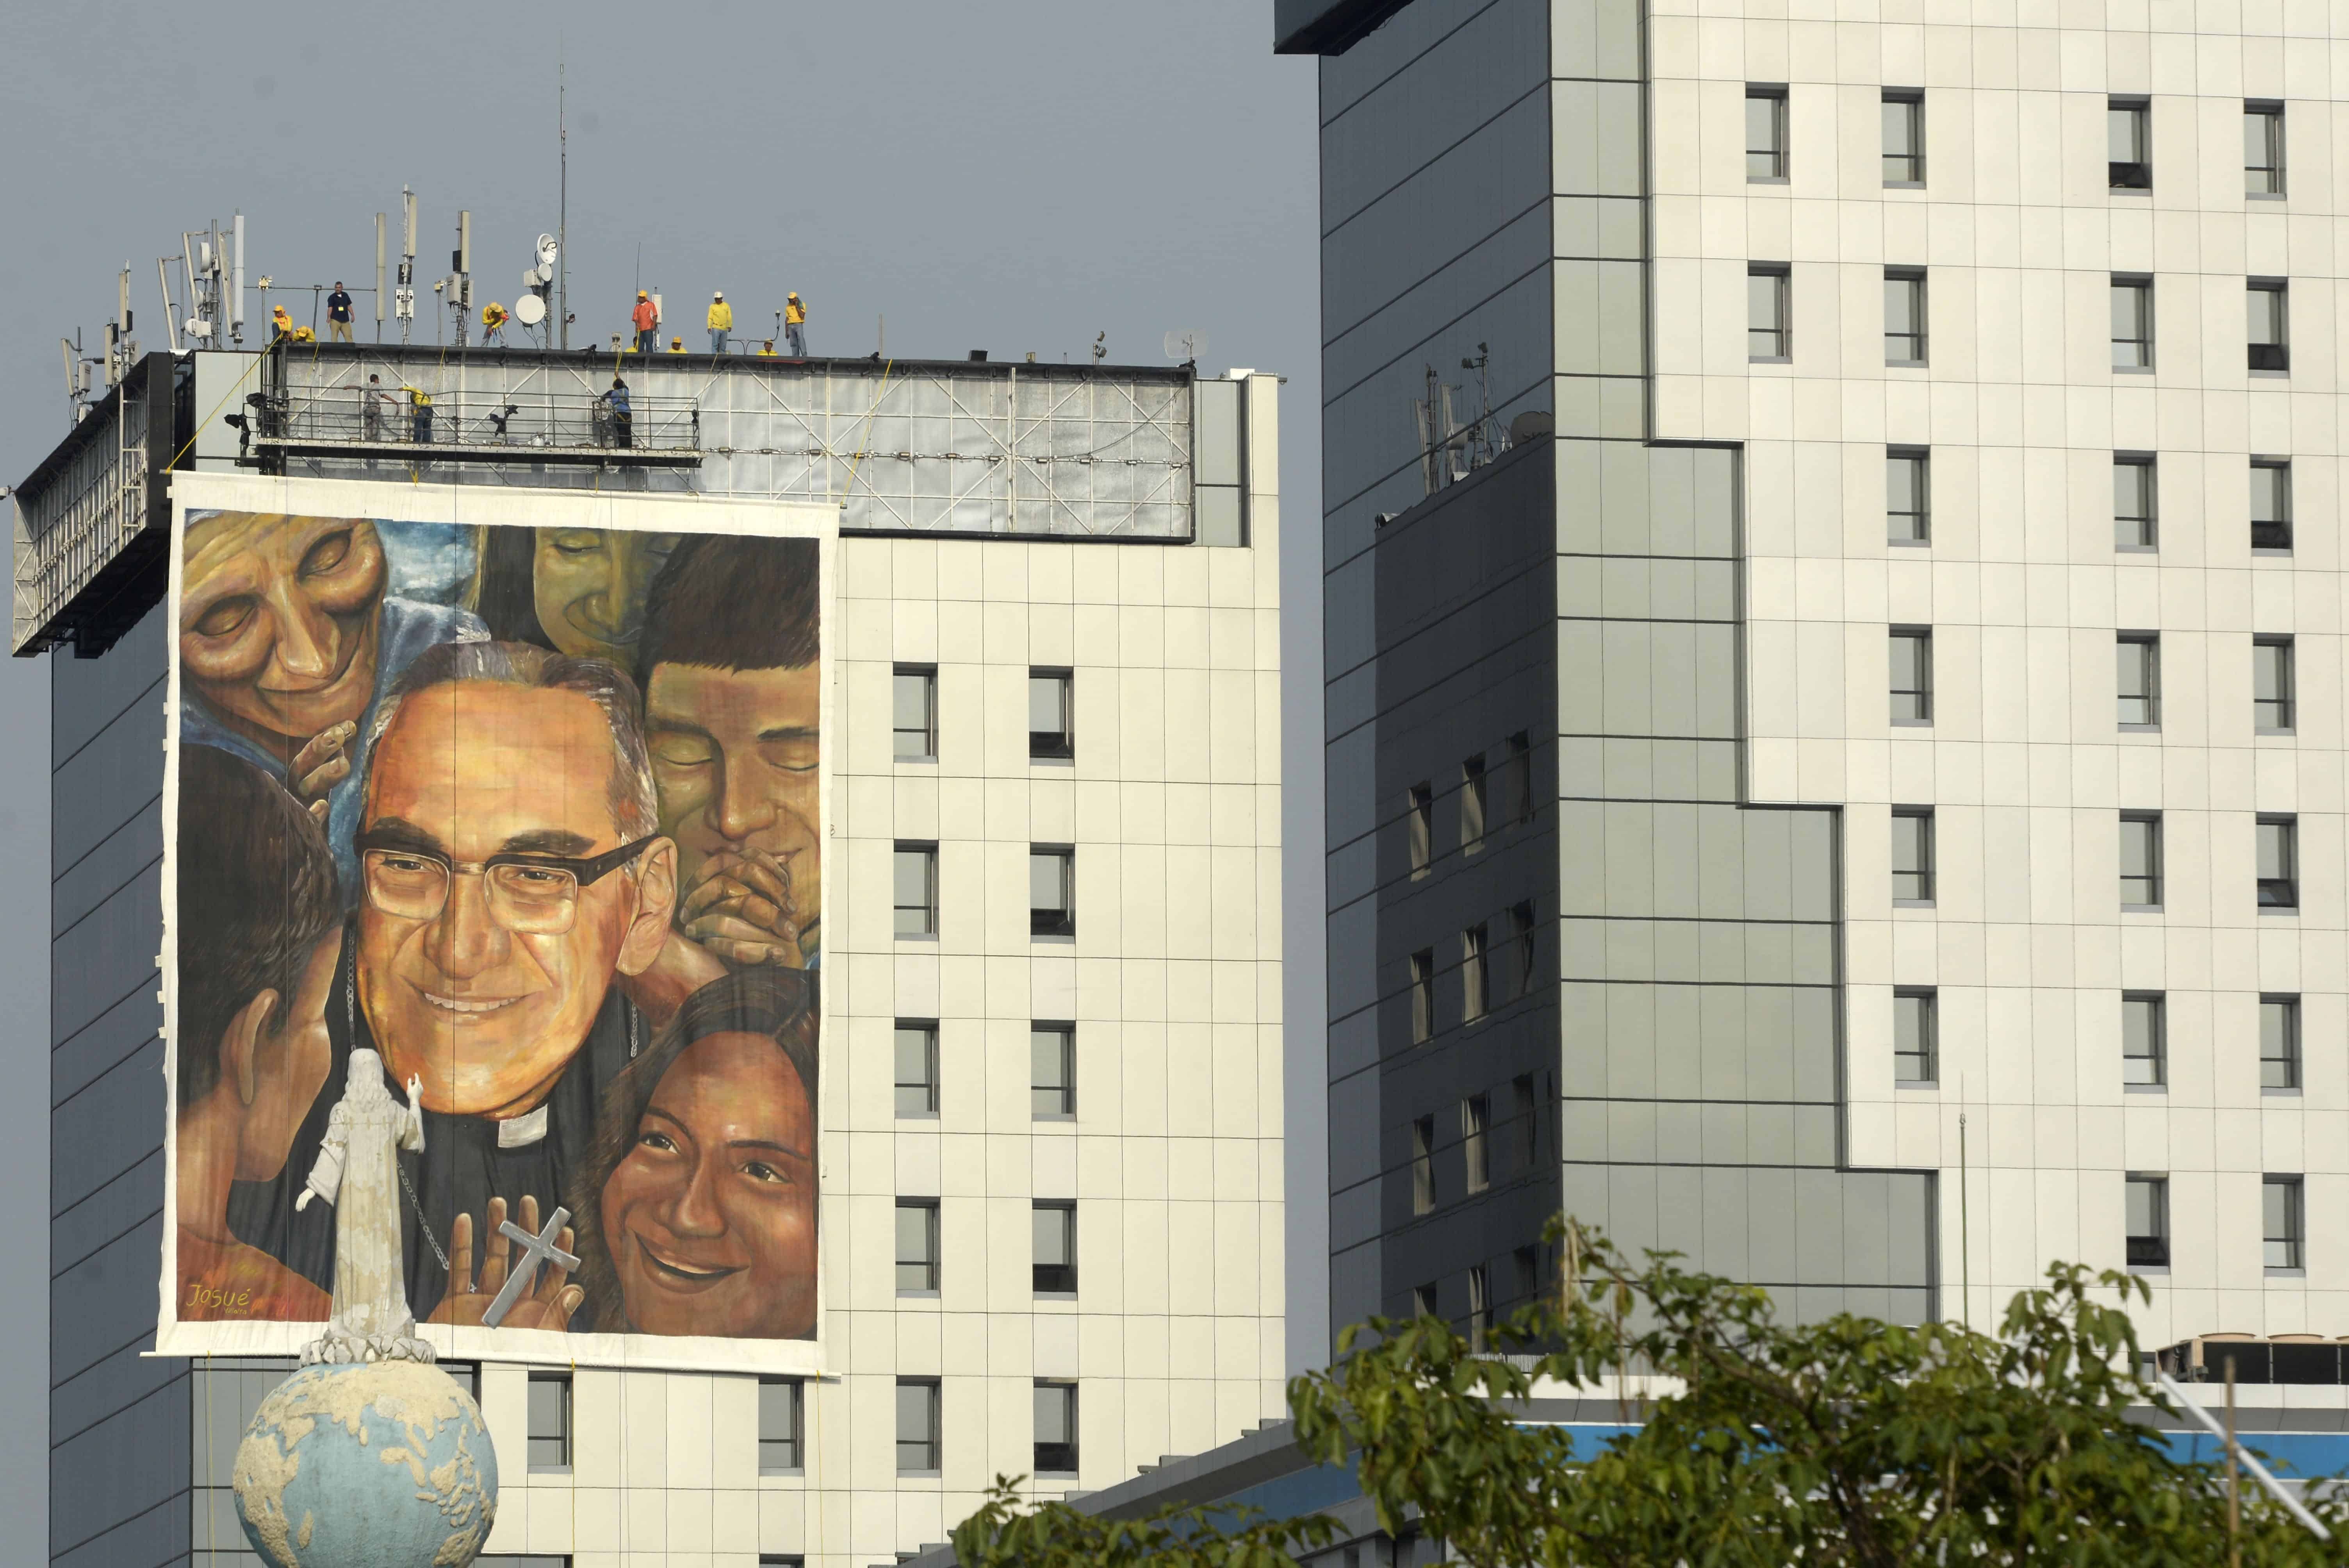 Workers hang a giant painting on May 19, 2015 dedicated to Monsignor Oscar Romero (1917-1980), who will be beatified next May 23, in San Salvador.